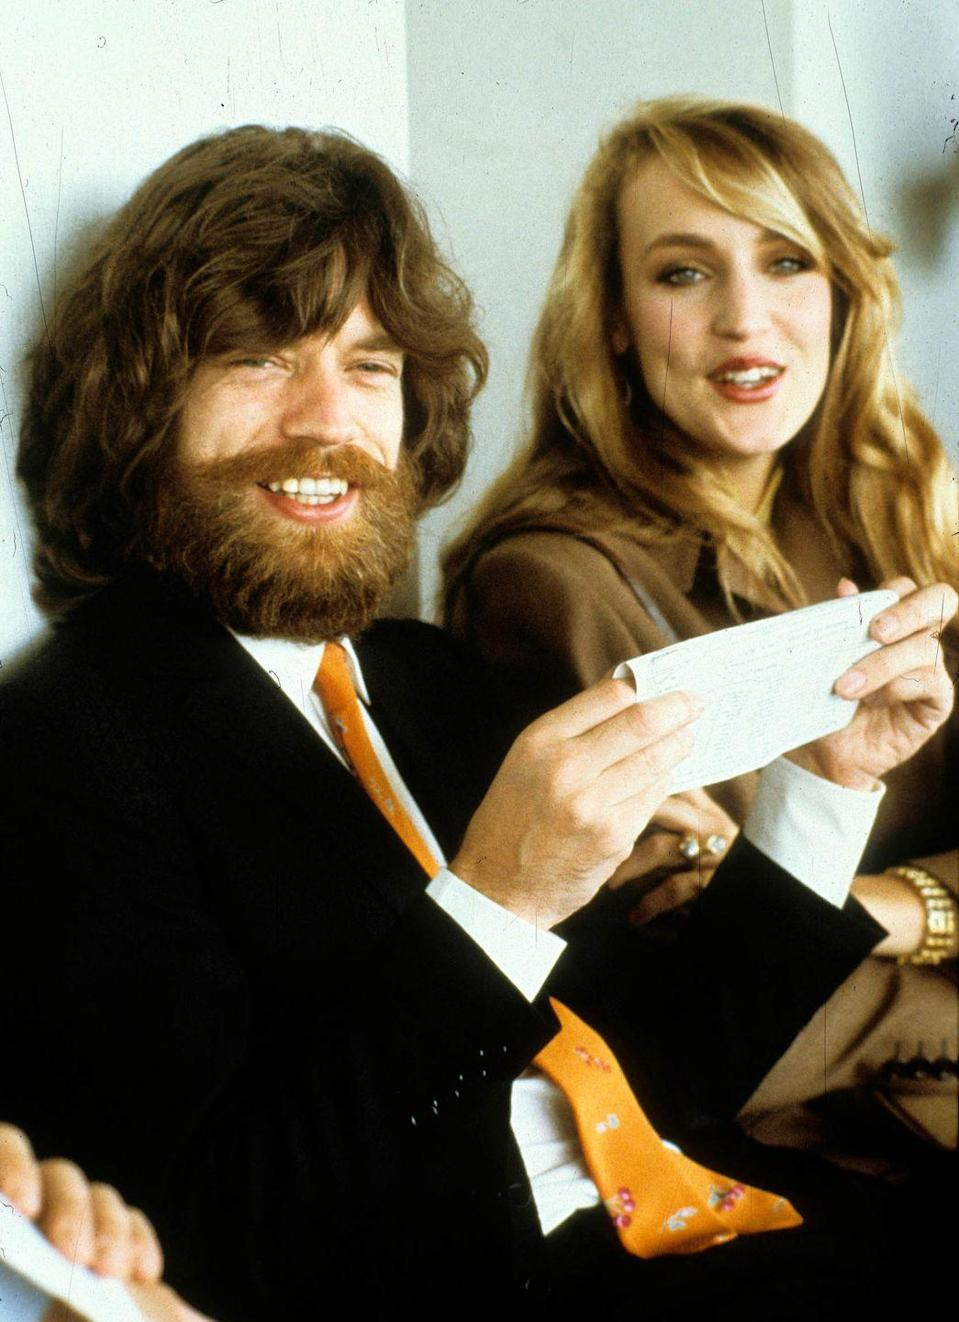 <p>Mick Jagger and model Jerry Hall are seen in 1979 in Paris, France.</p>